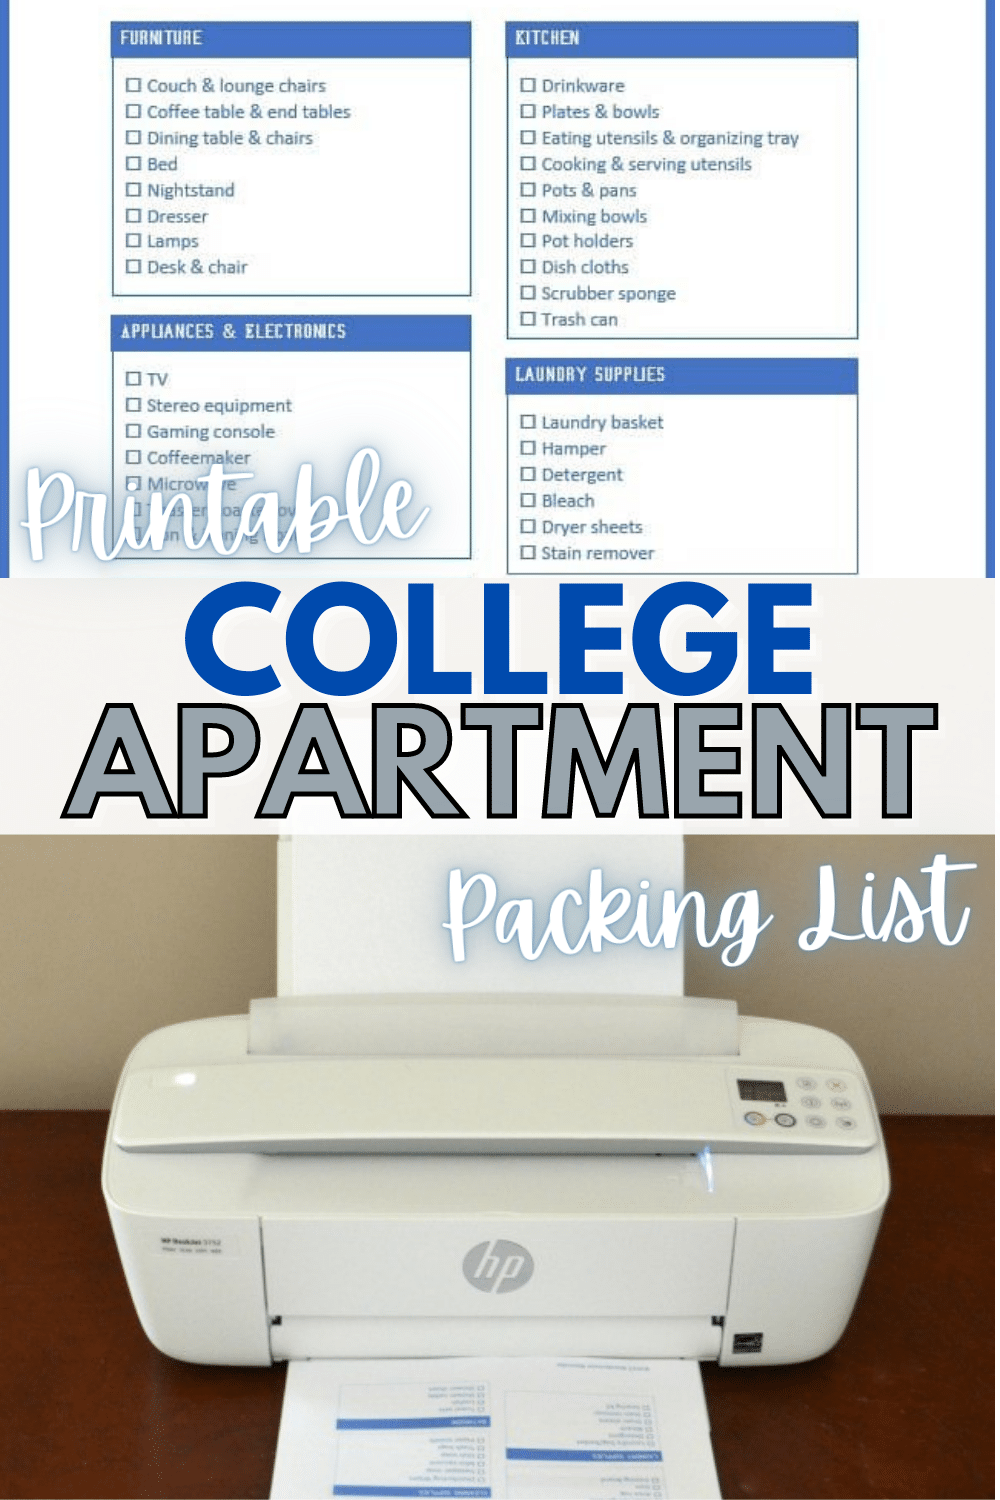 Moving out of the dorms and into an apartment is exciting. Make sure you have everything you need with this college apartment packing list. #collegeapartment #packinglist #printable #freeprintable via @wondermomwannab